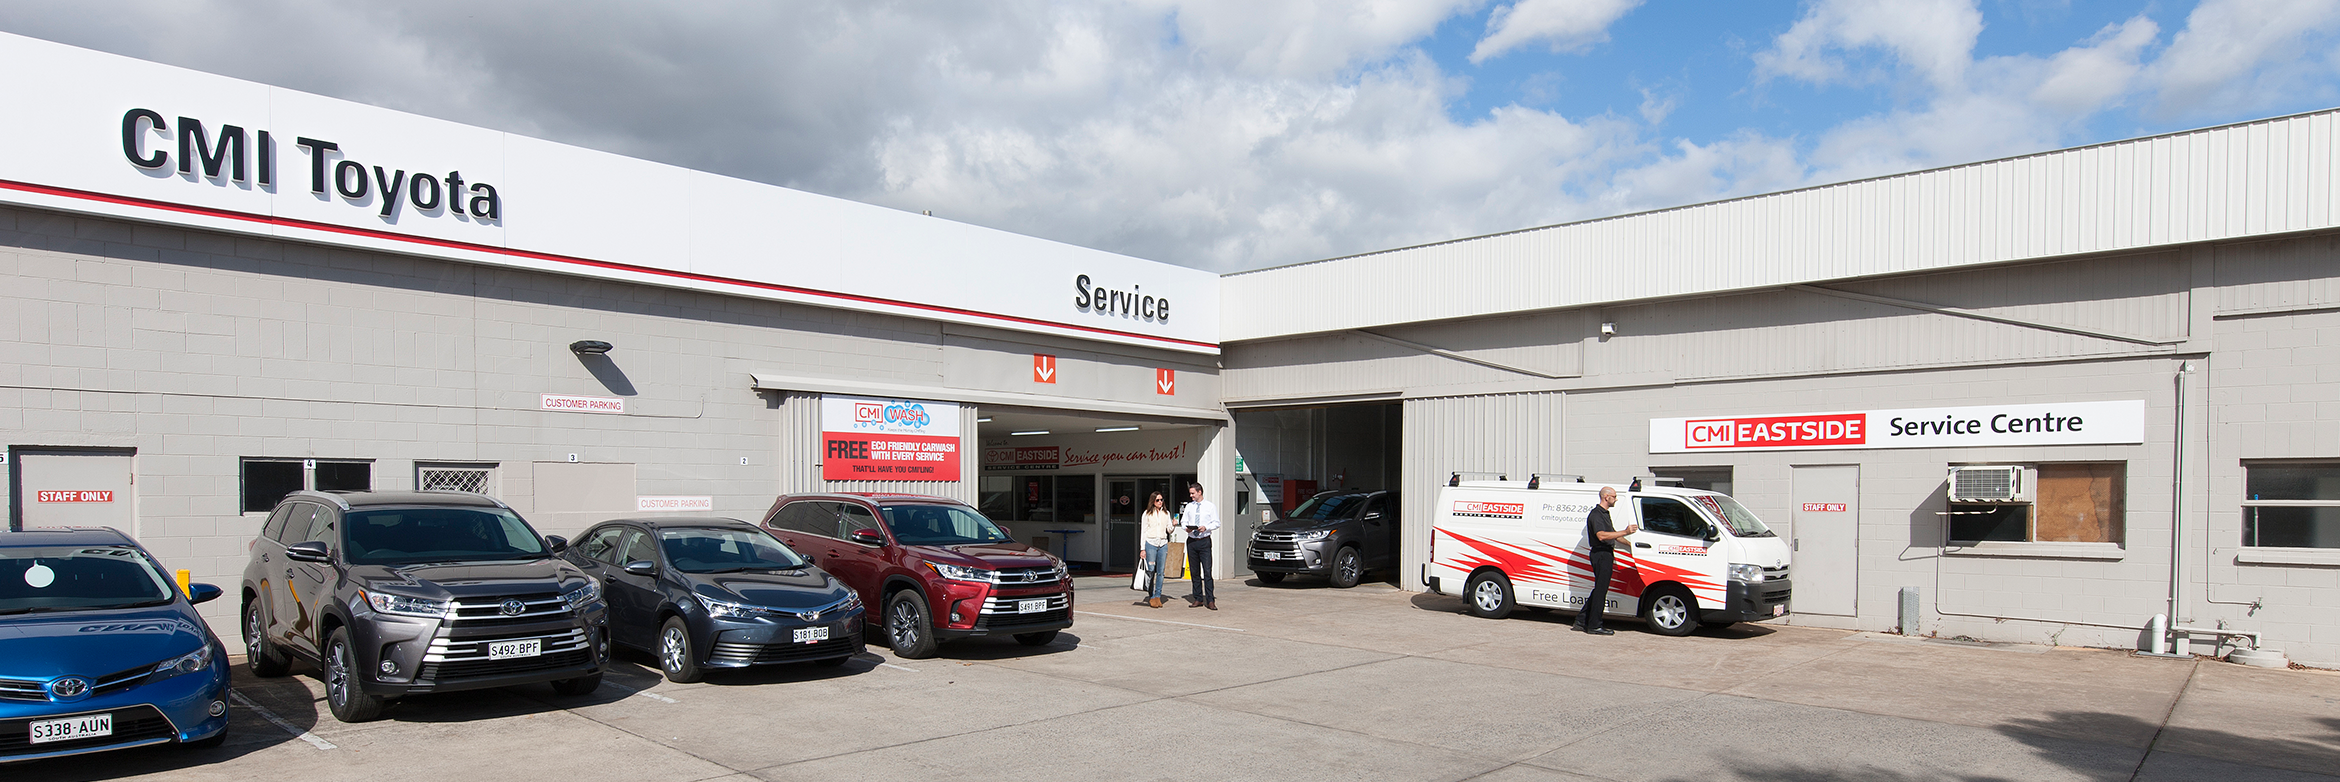 CMI Toyota Eastside, Stepney - CMV Group